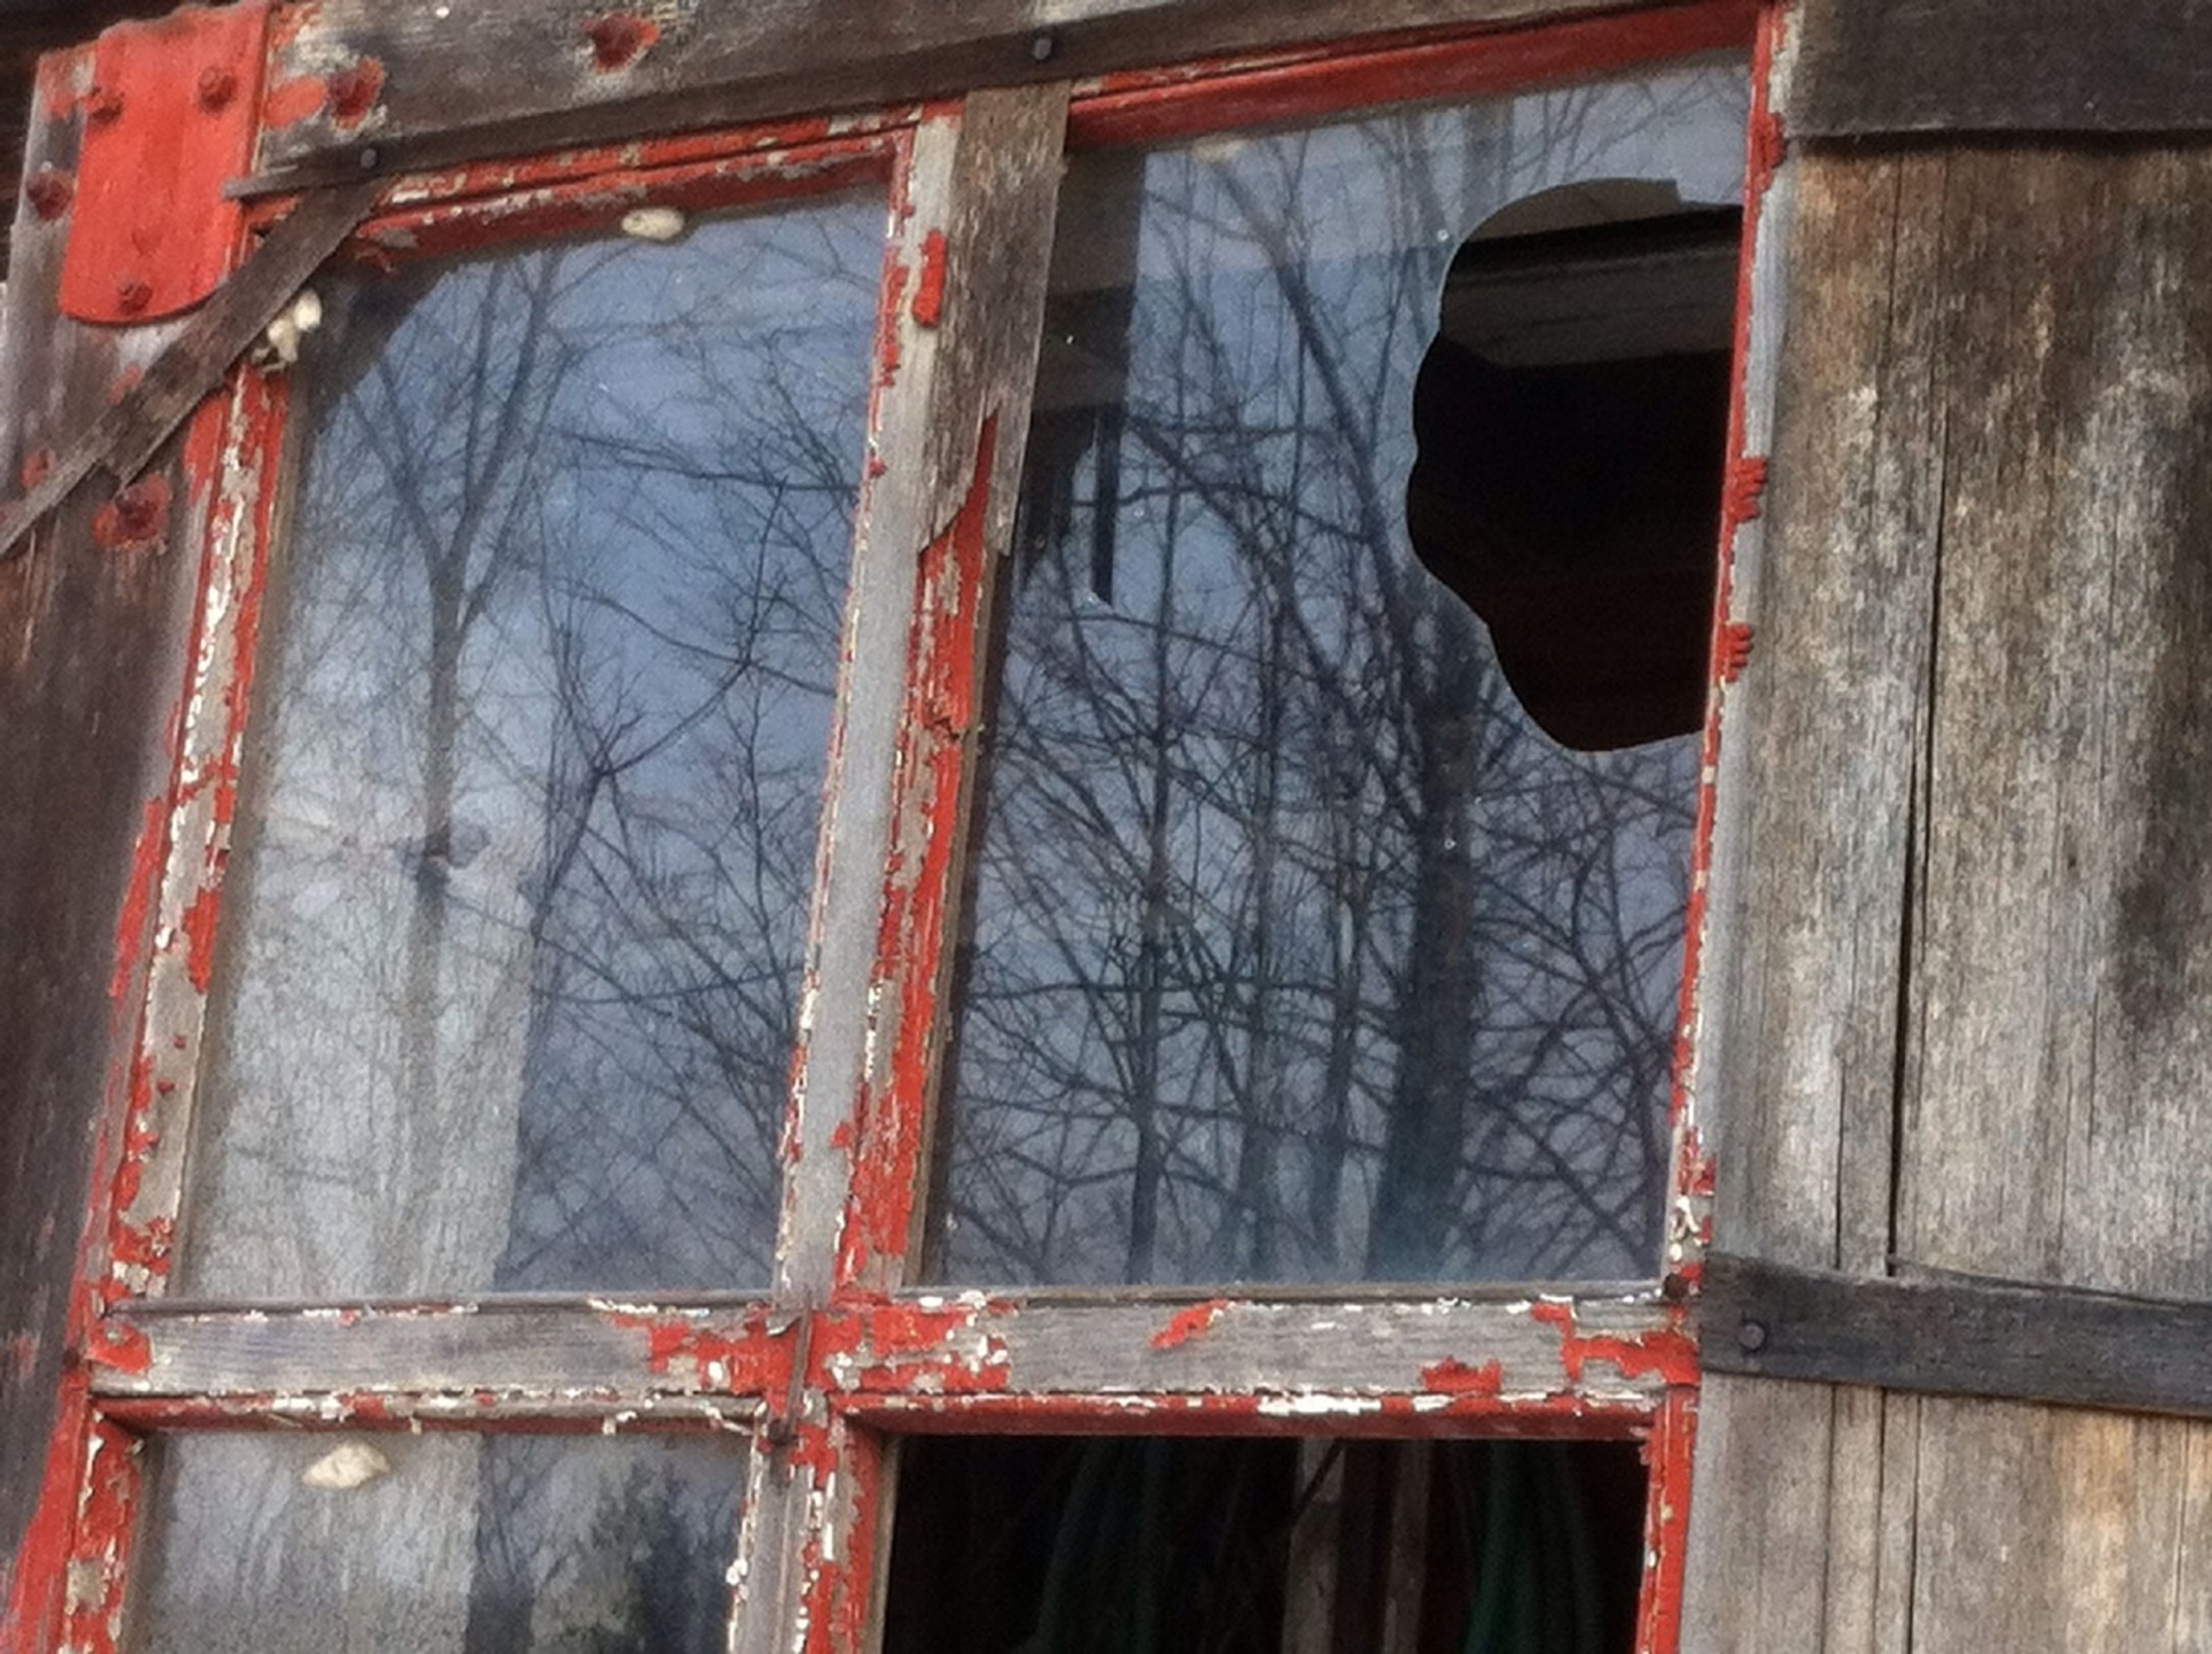 built structure, architecture, building exterior, weathered, old, damaged, window, abandoned, low angle view, wood - material, house, obsolete, rusty, run-down, day, deterioration, outdoors, no people, metal, building